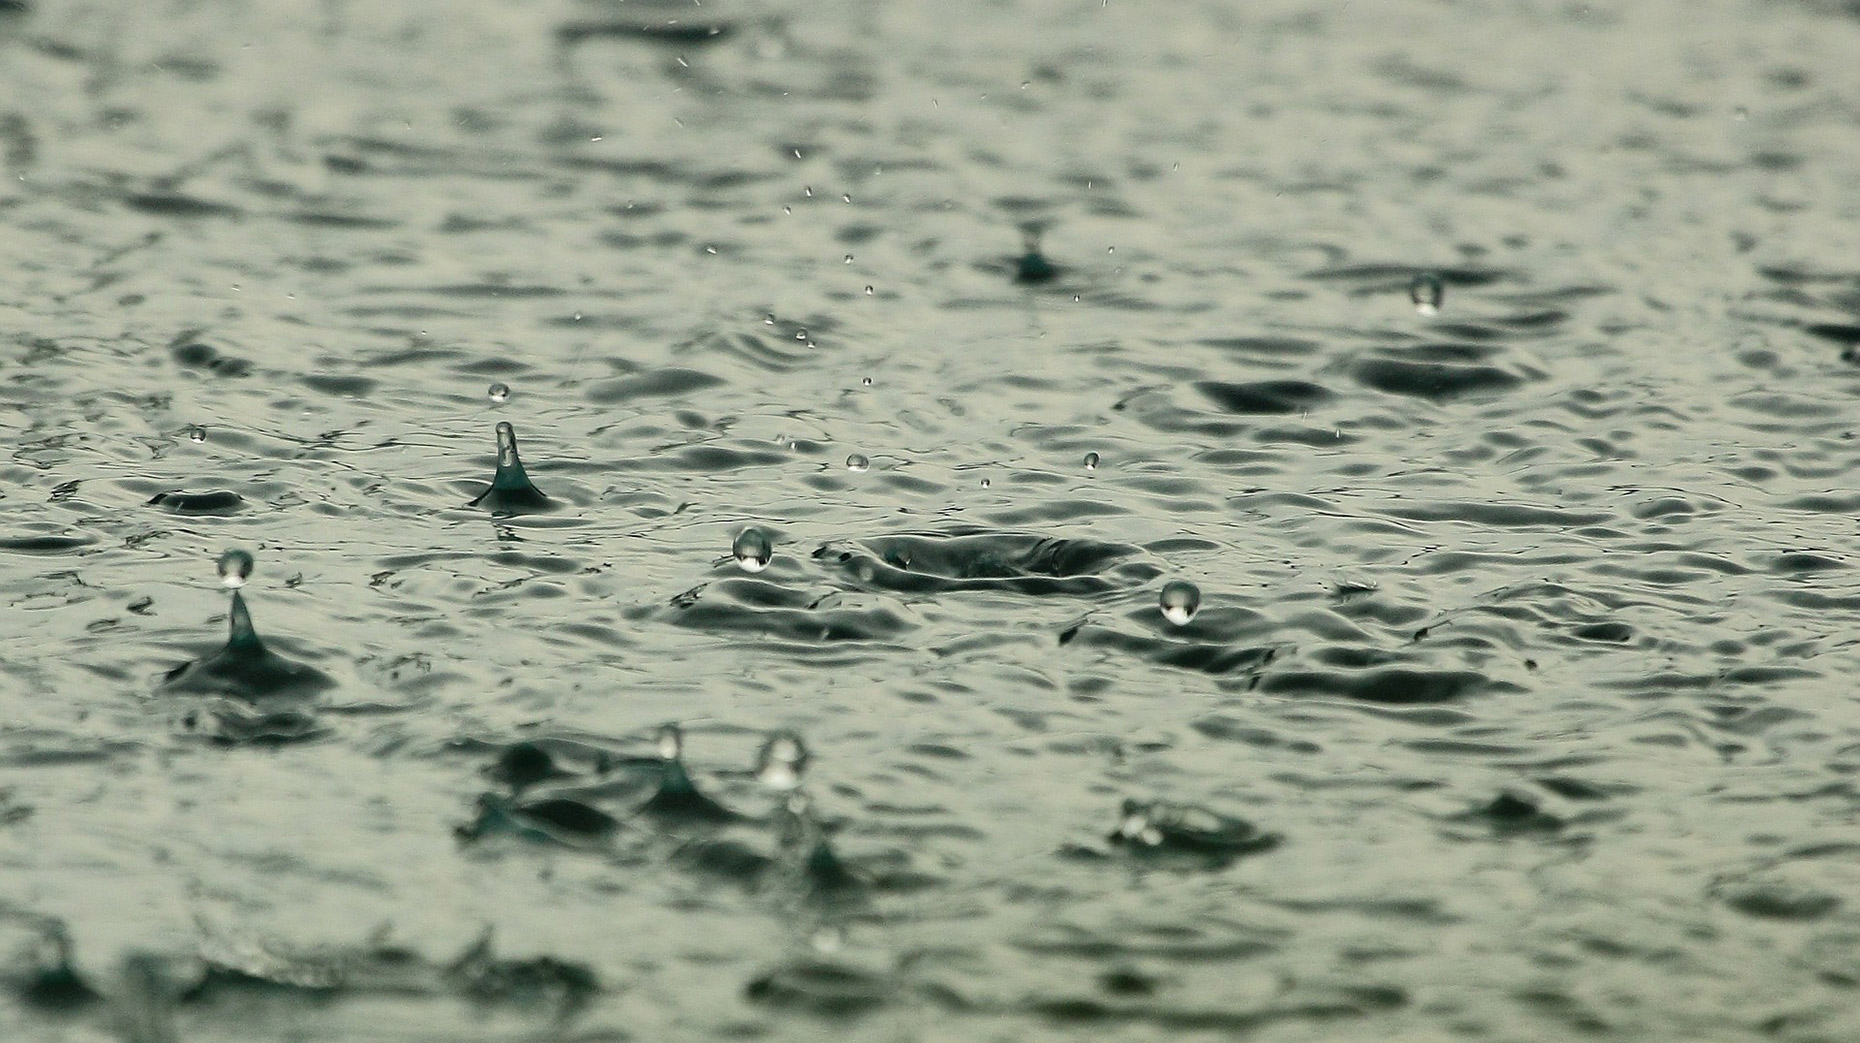 Yellow weather warning issued for rain in Newark area